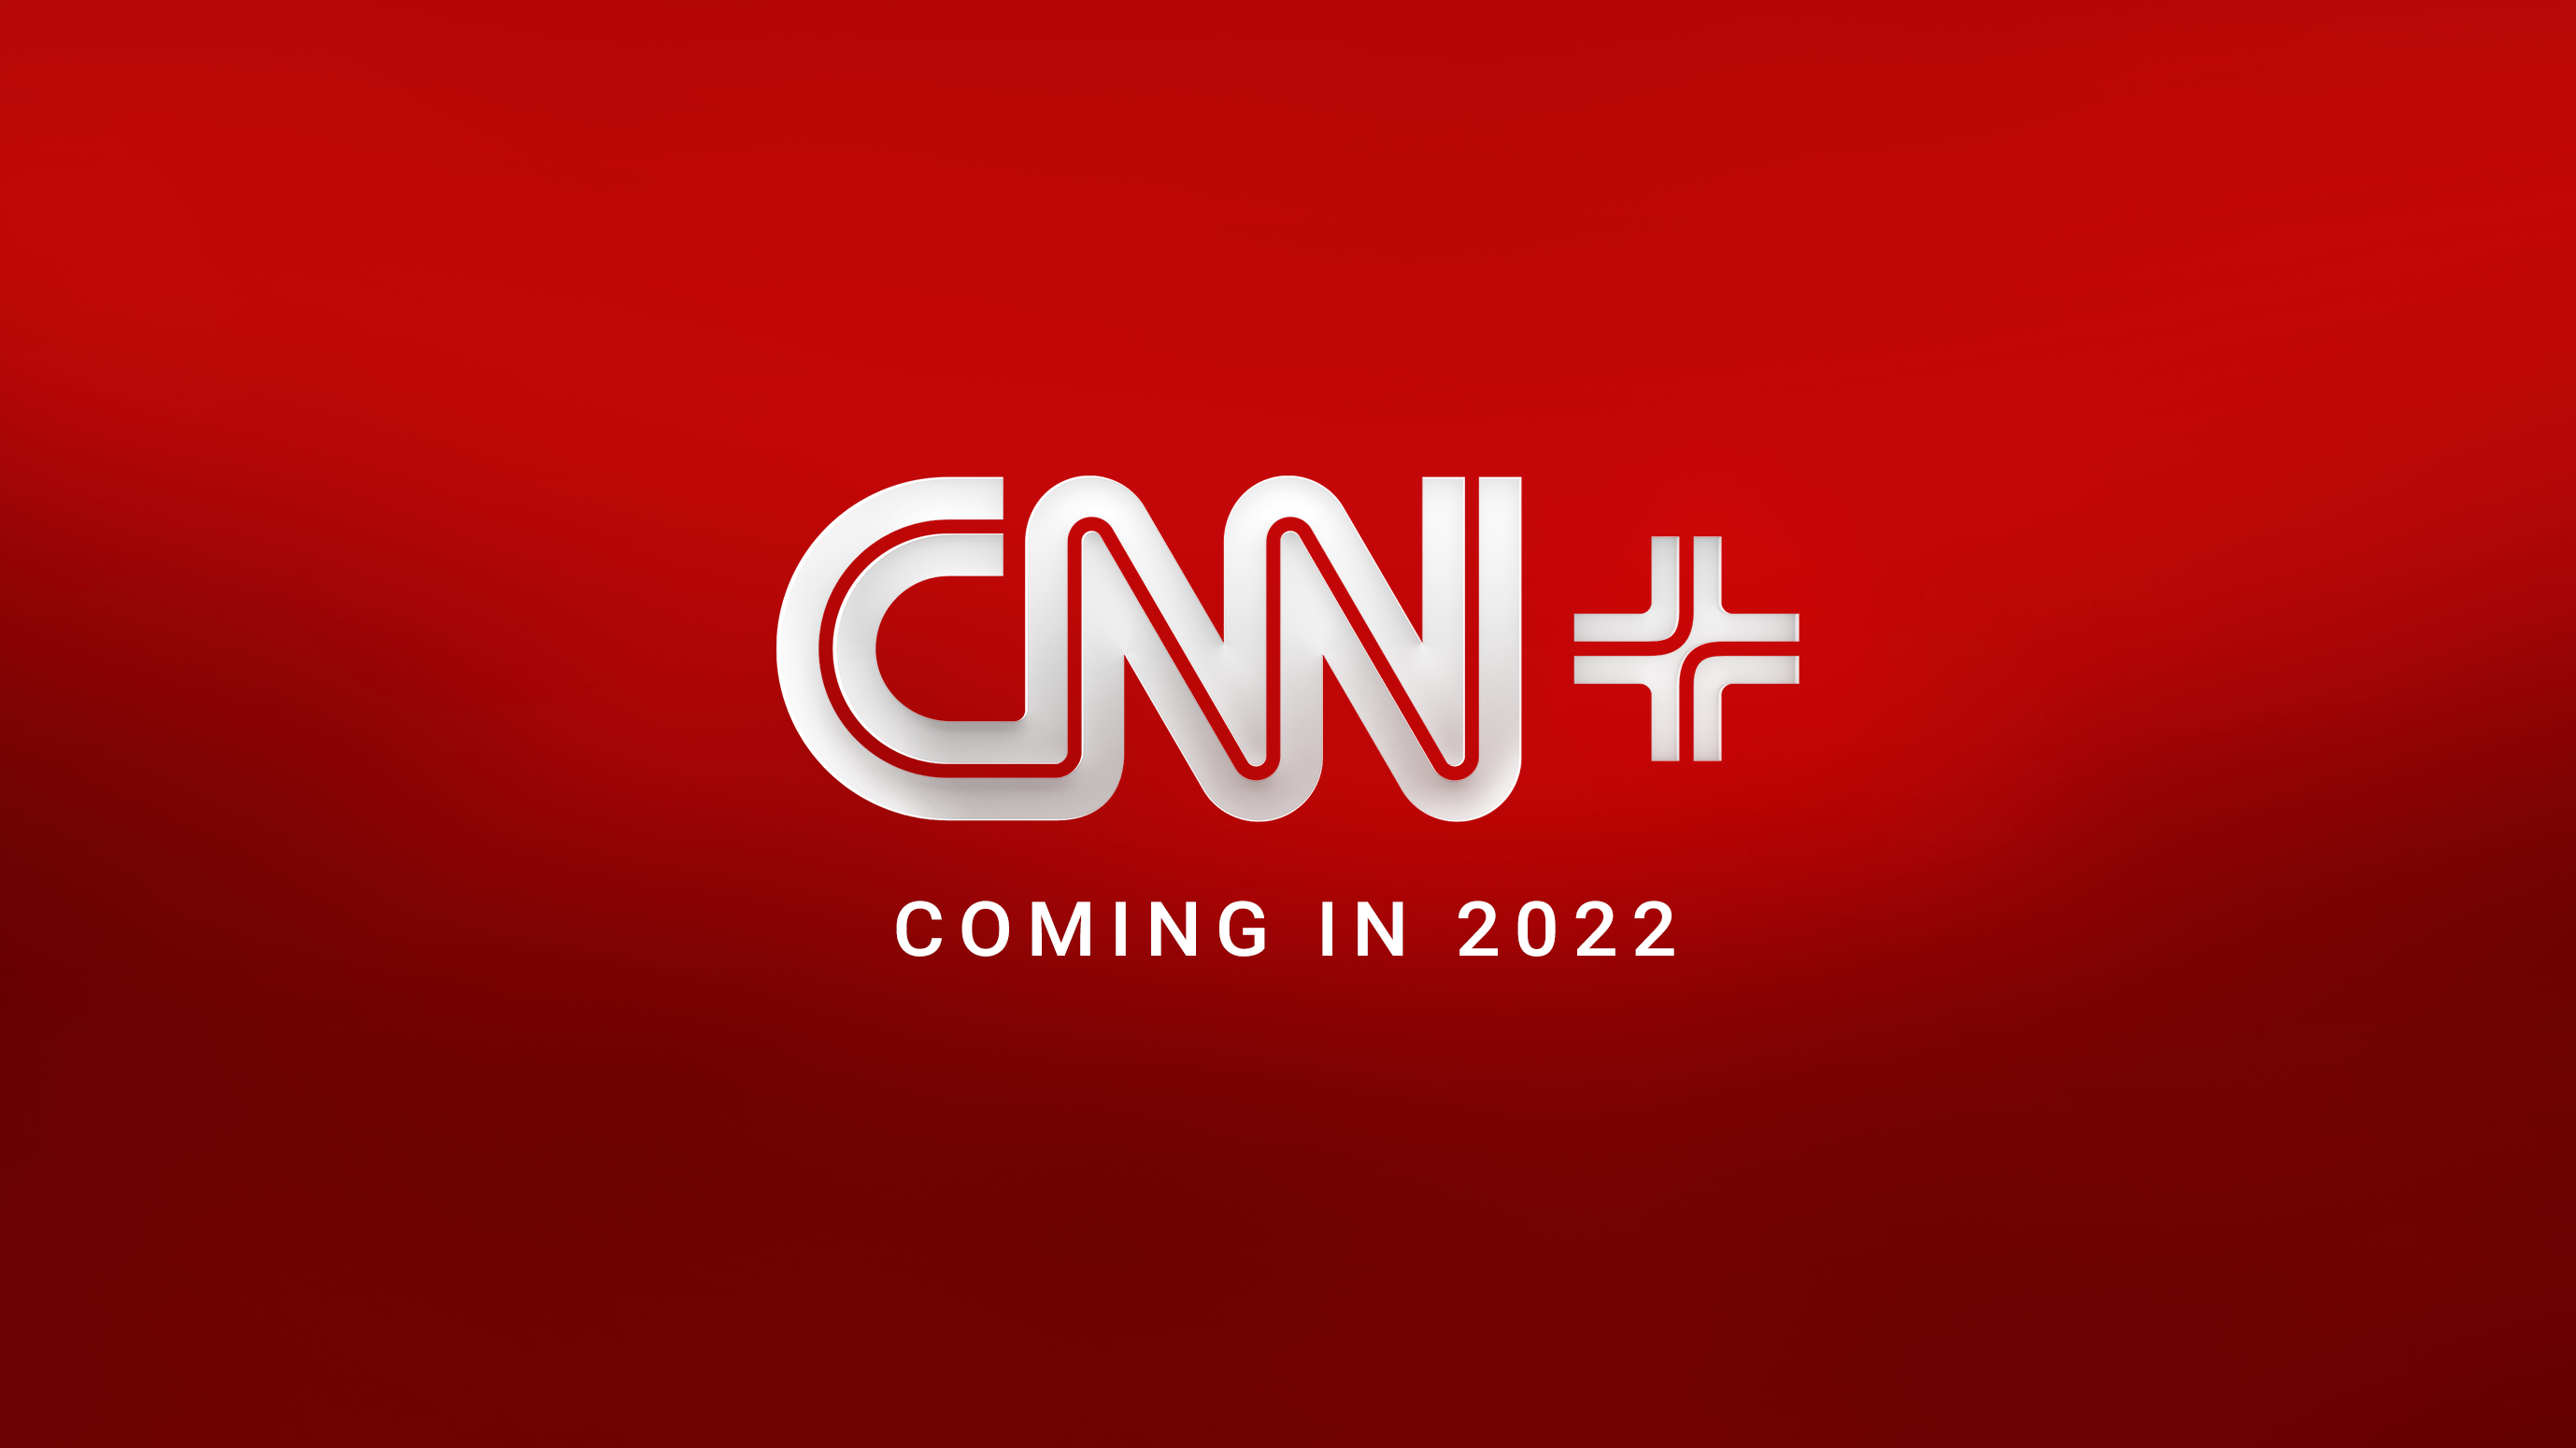 This is CNN Plus: Cable news network to launch streaming platform in 2022